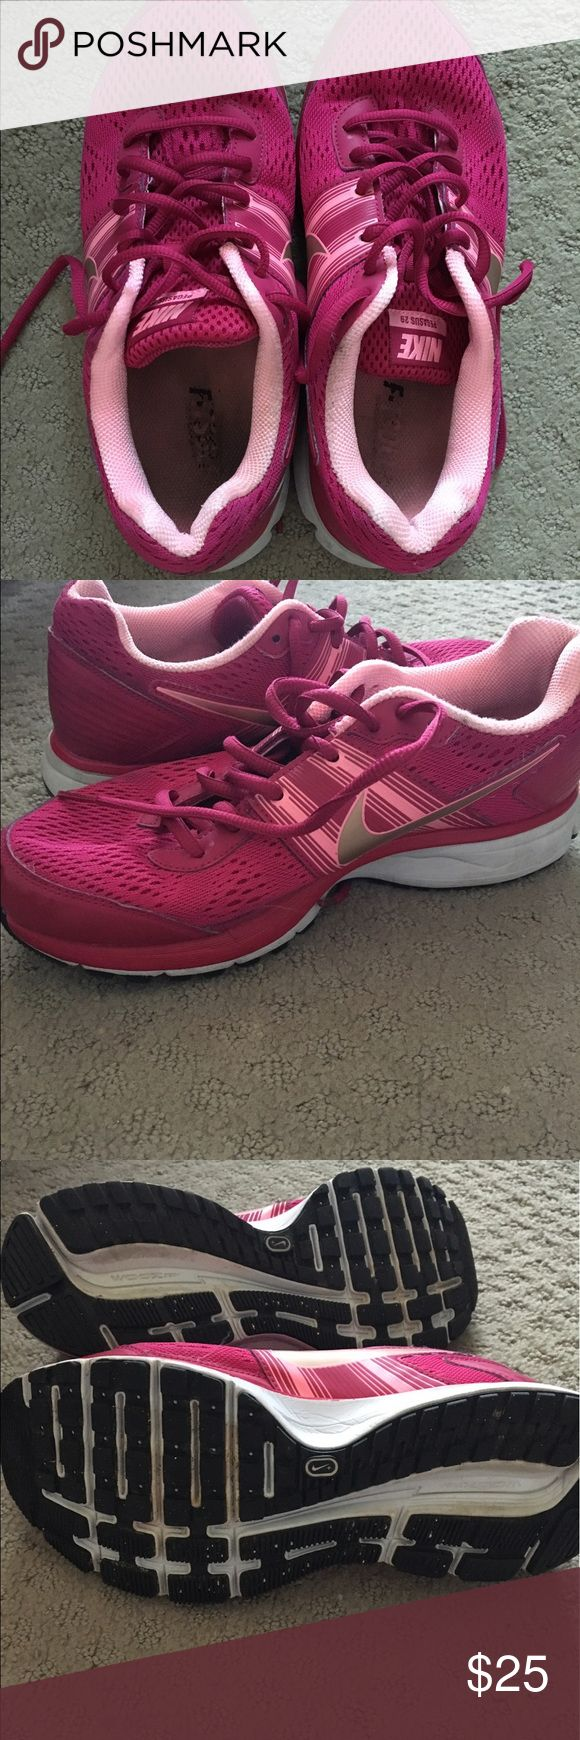 Nike Pegasus 29 Shoes Pink/magenta Nike Pegasus 29, in good condition, very comfortable! Nike Shoes Athletic Shoes